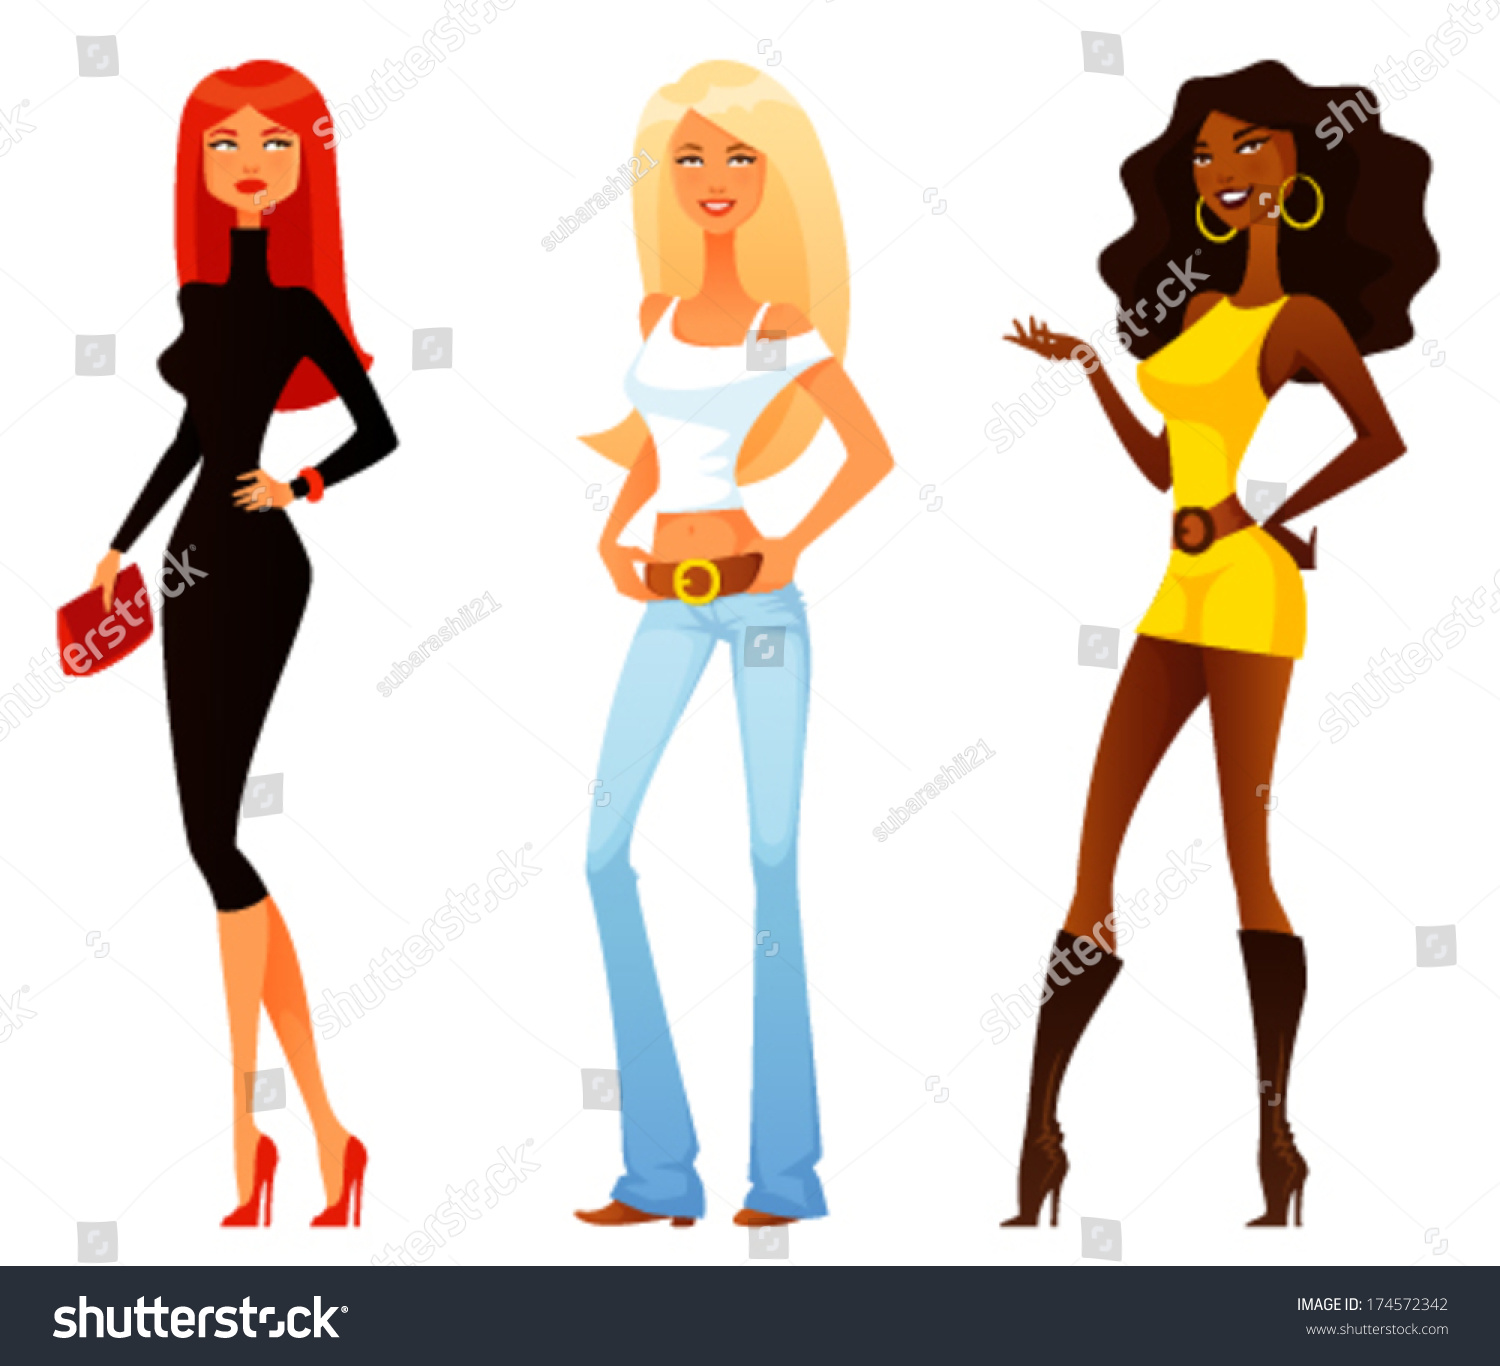 Funny Cartoon Girls Various Fashion Style Stock Vector 174572342 Shutterstock